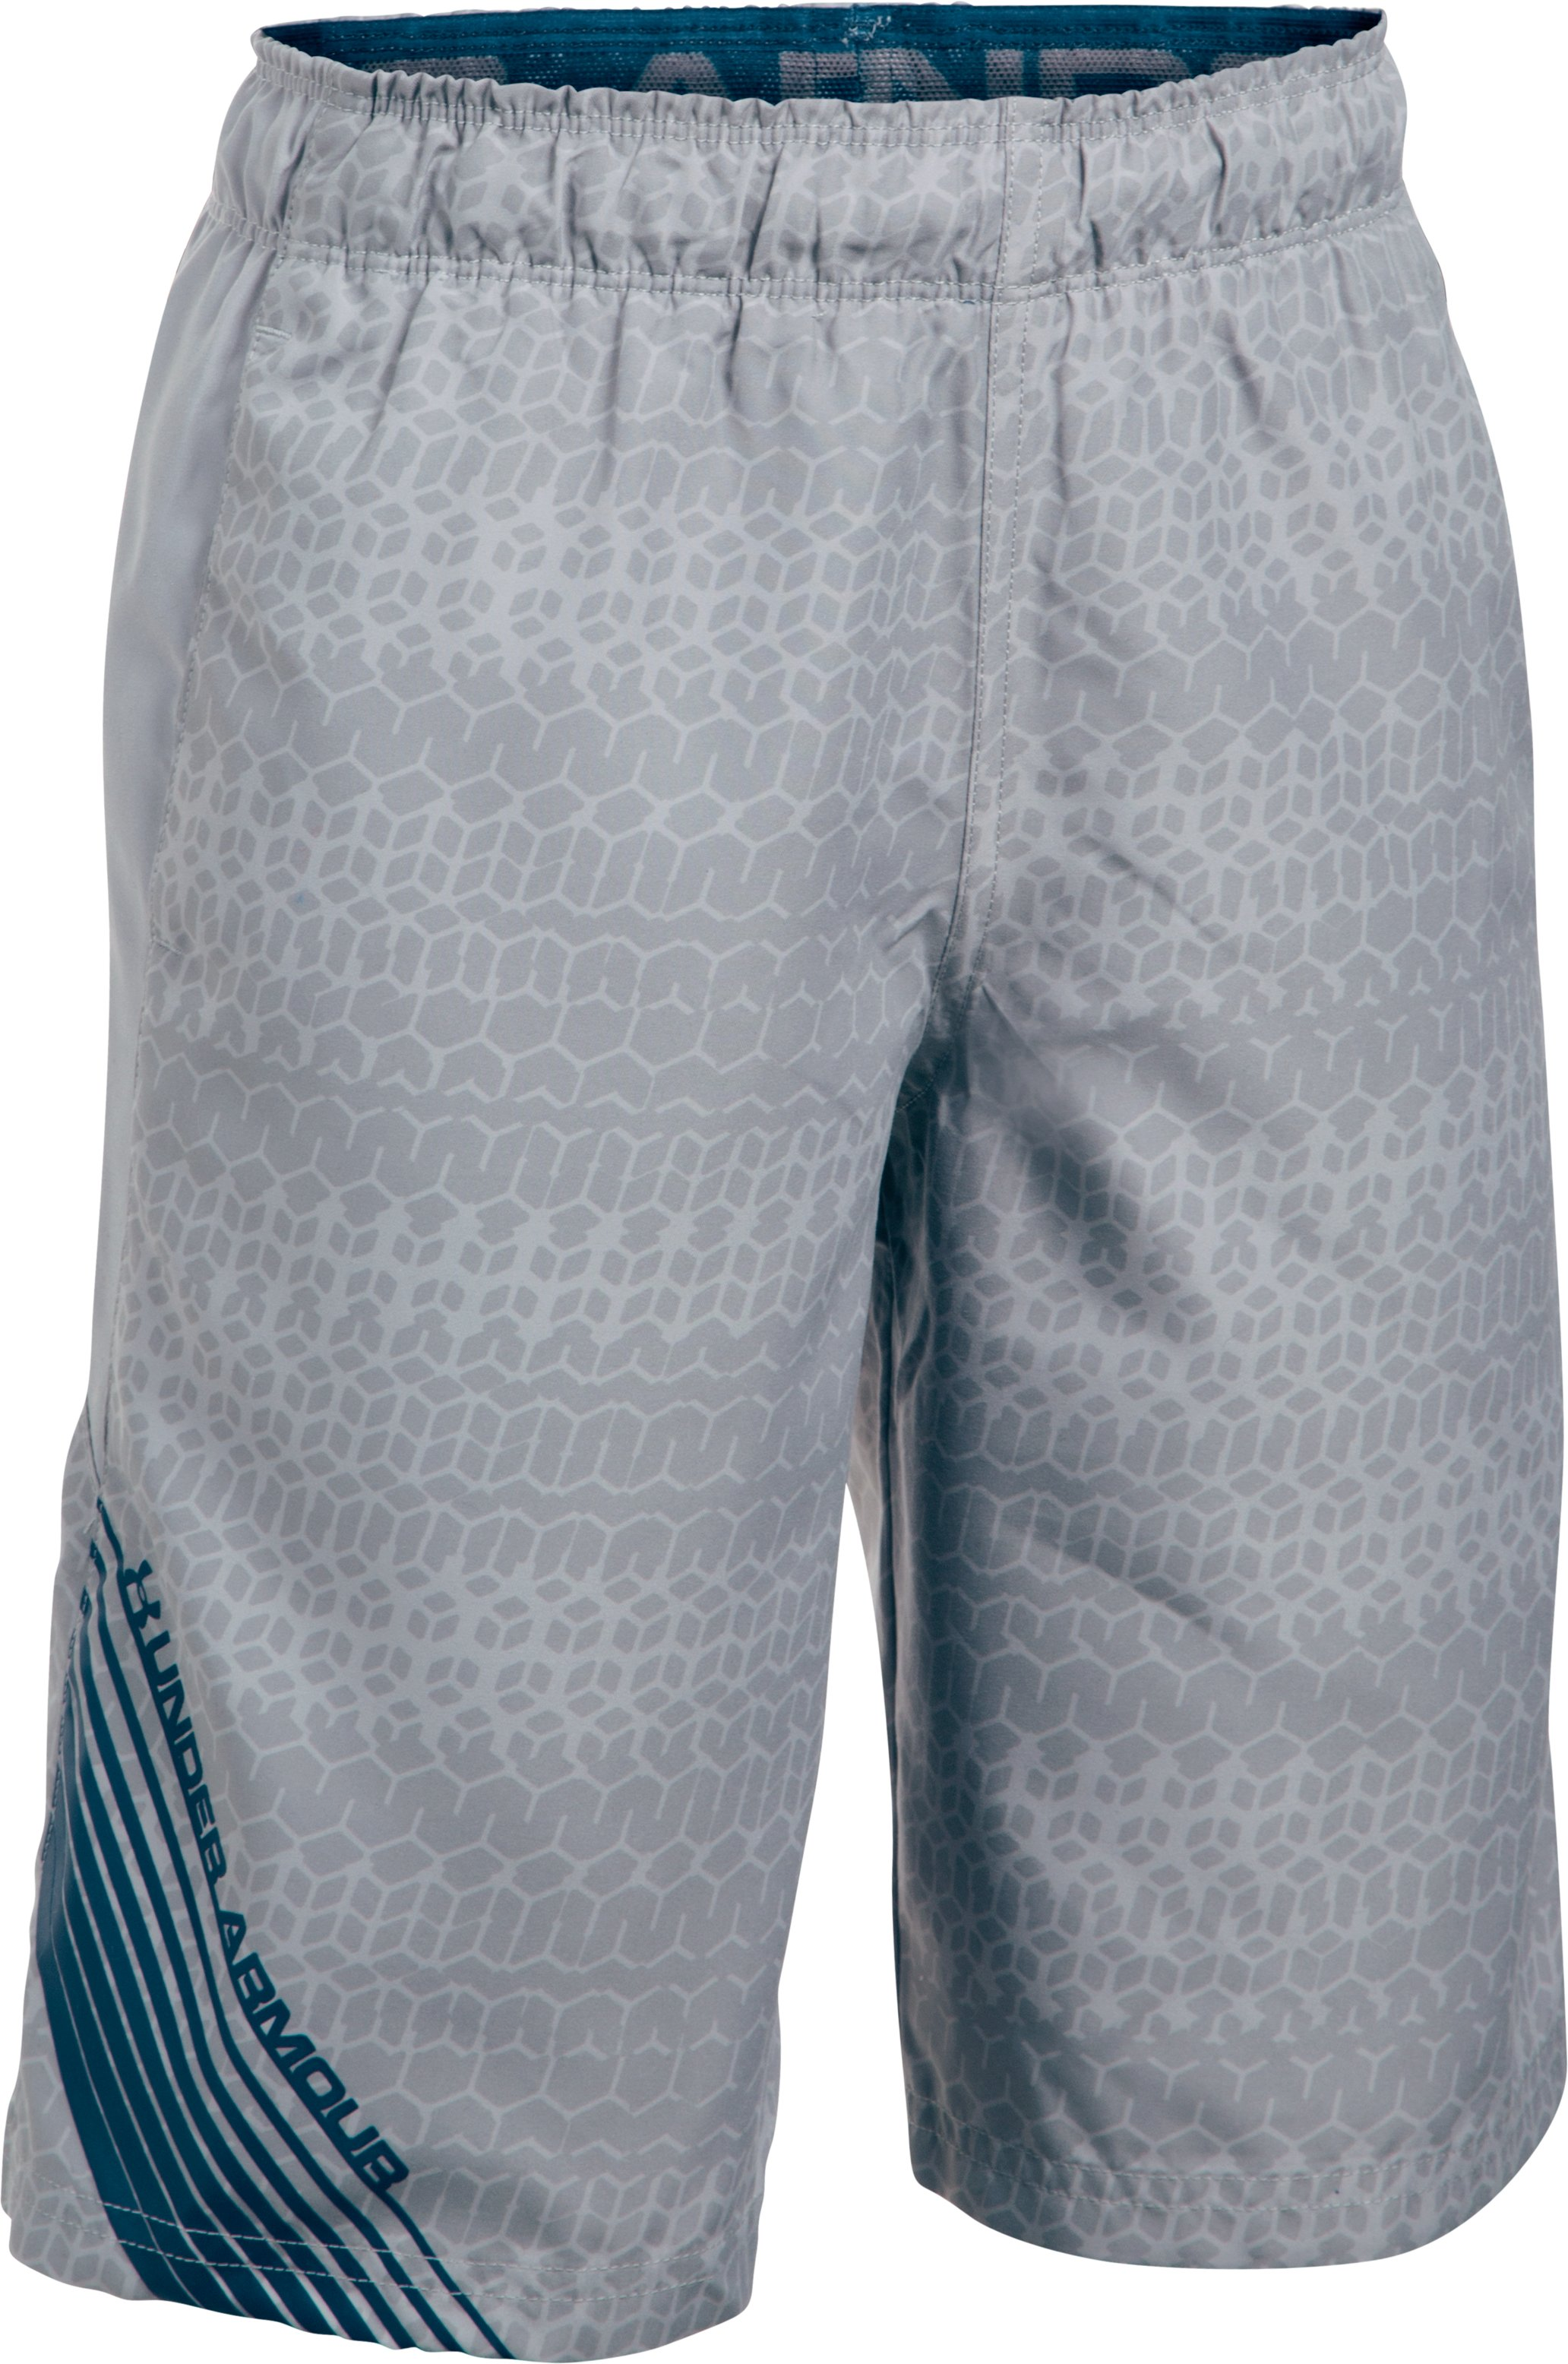 Boys' UA Mania Volley Boardshorts, OVERCAST GRAY, zoomed image